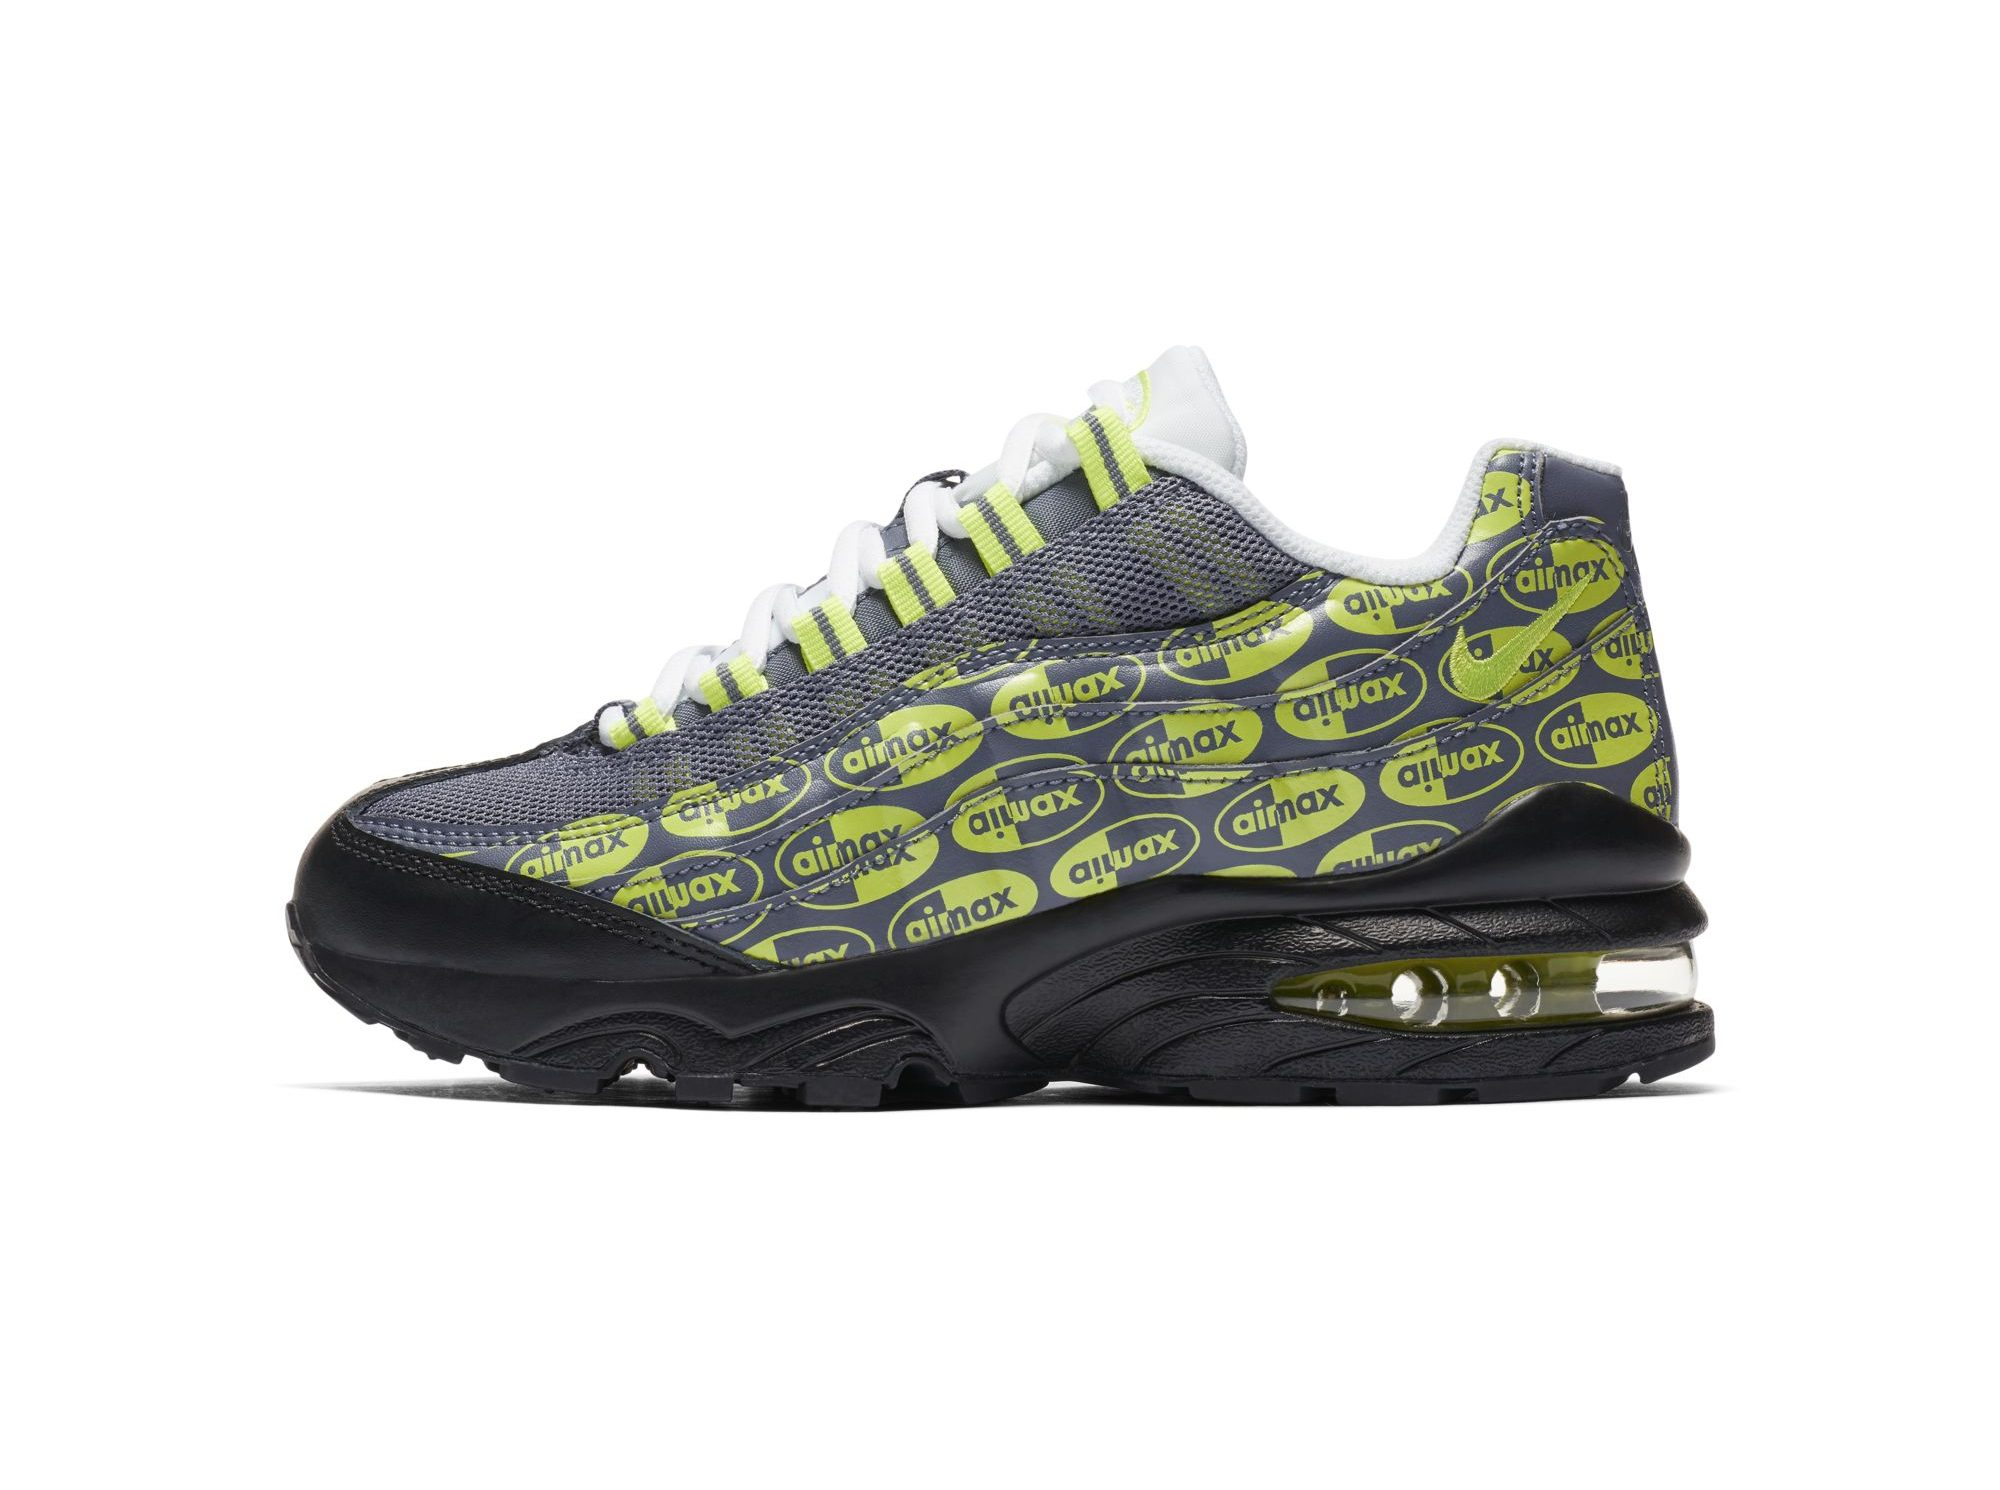 c651711935 air max 95 93 hybrid Archives - WearTesters